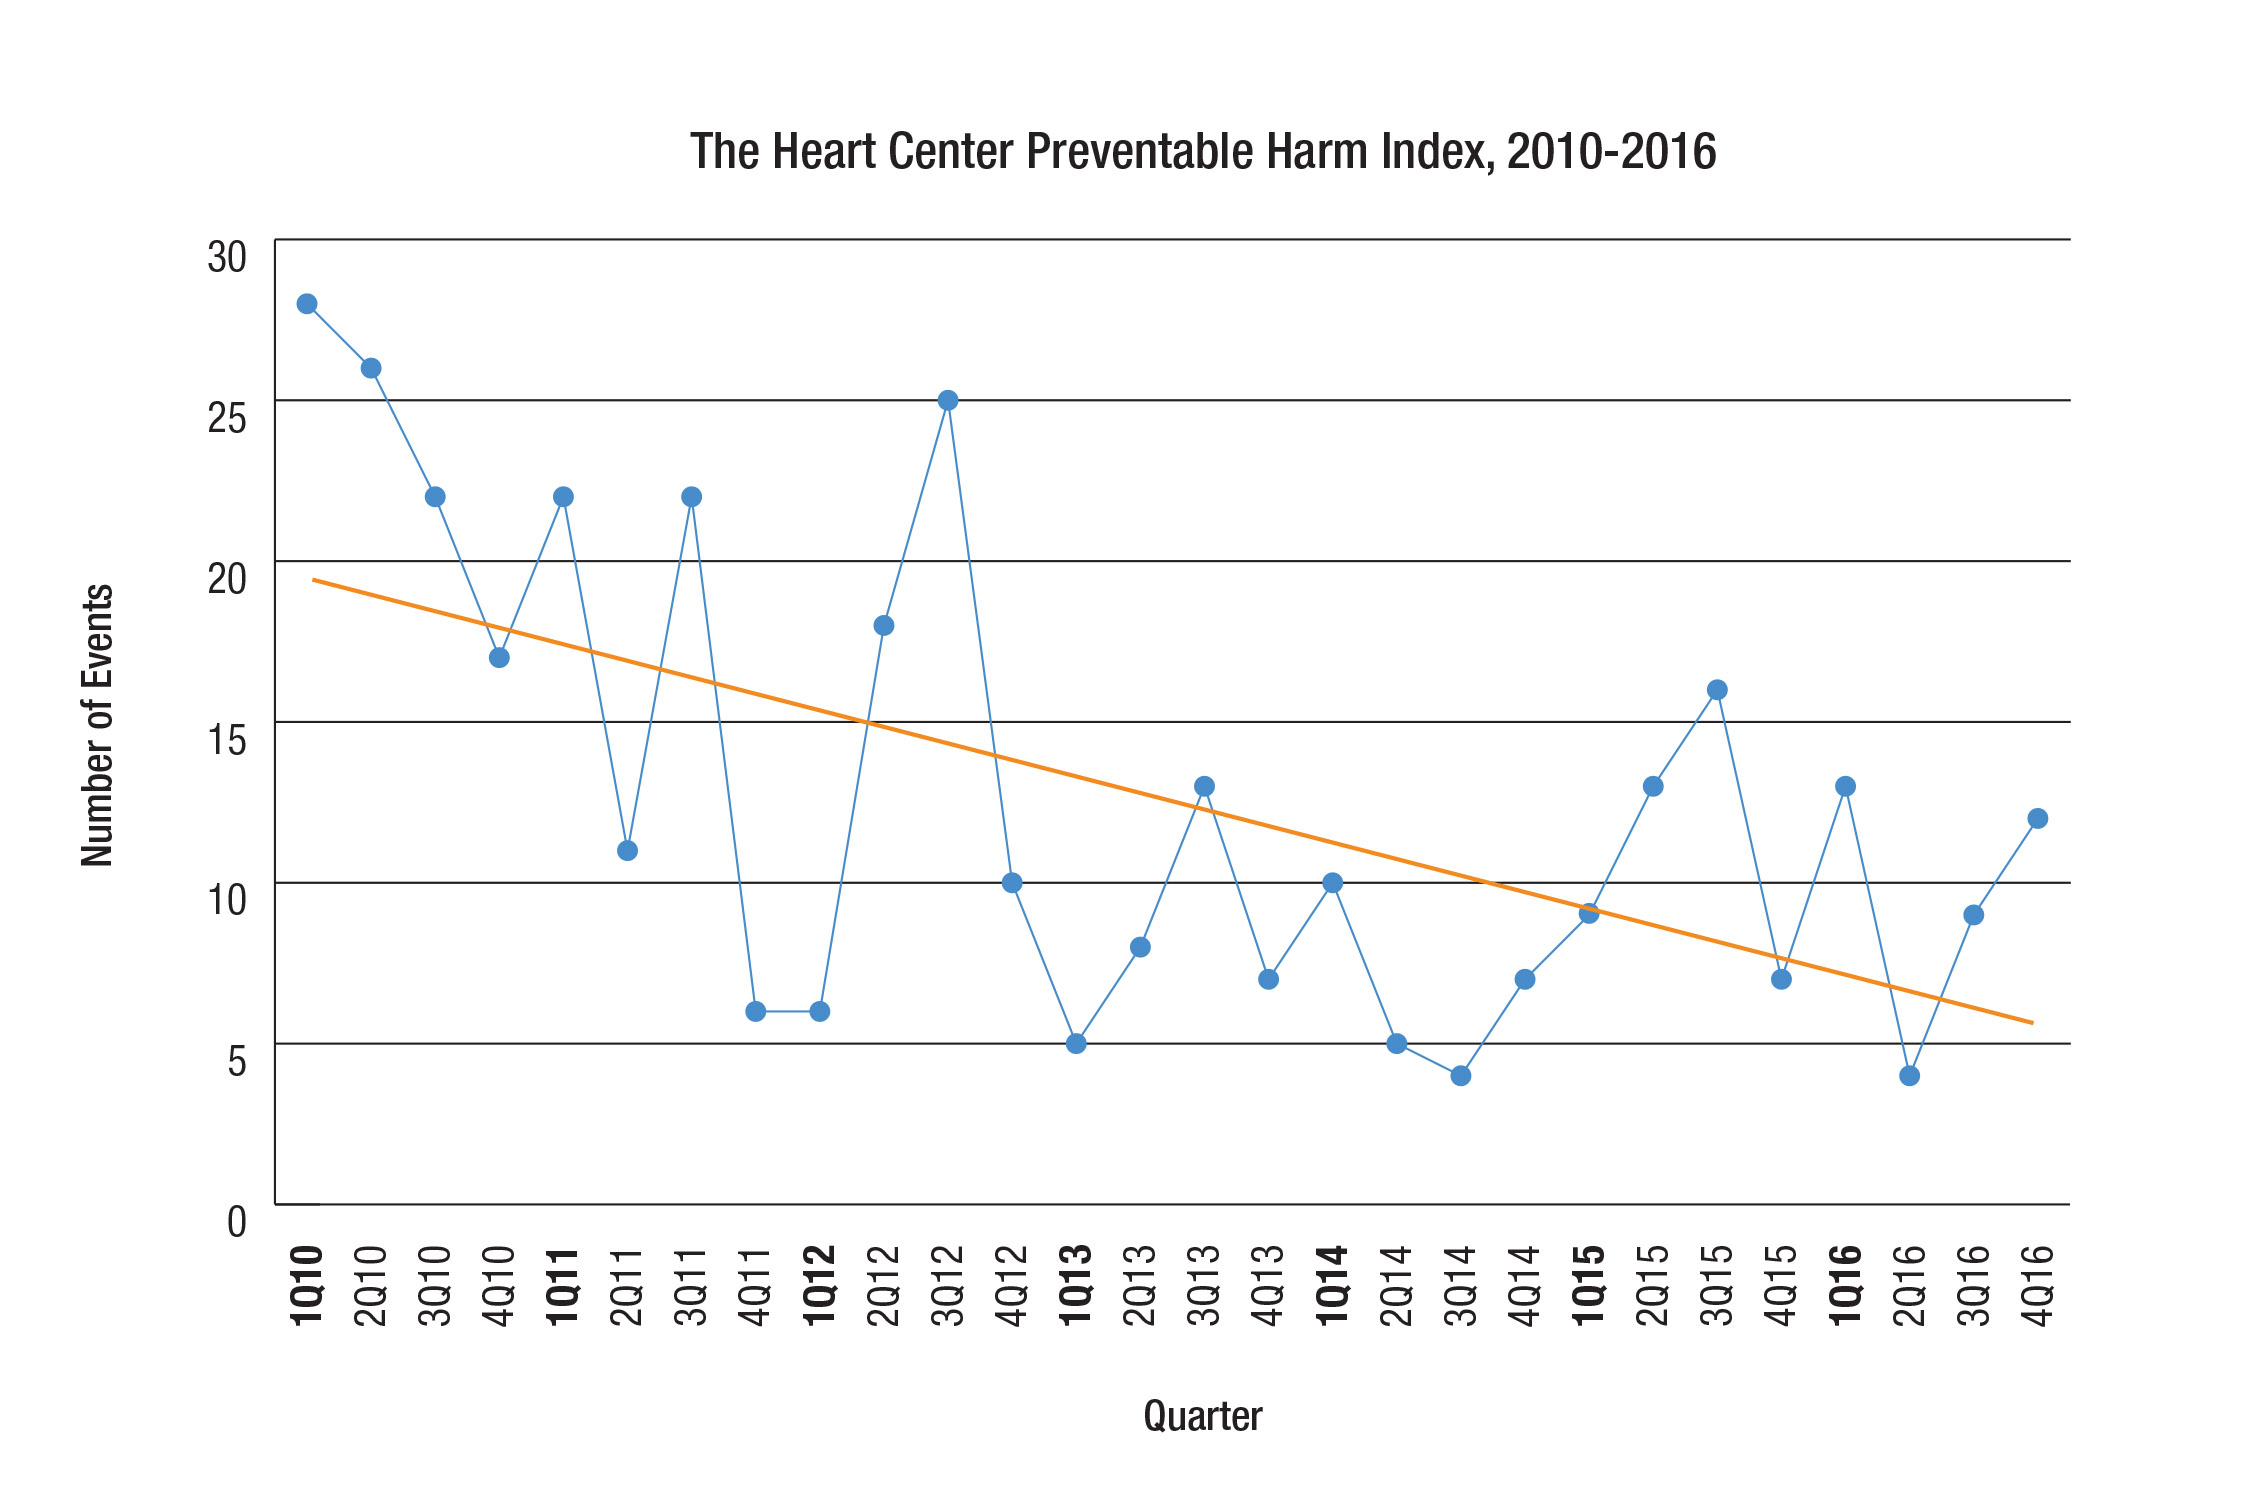 The Heart Center Preventable Harm Index